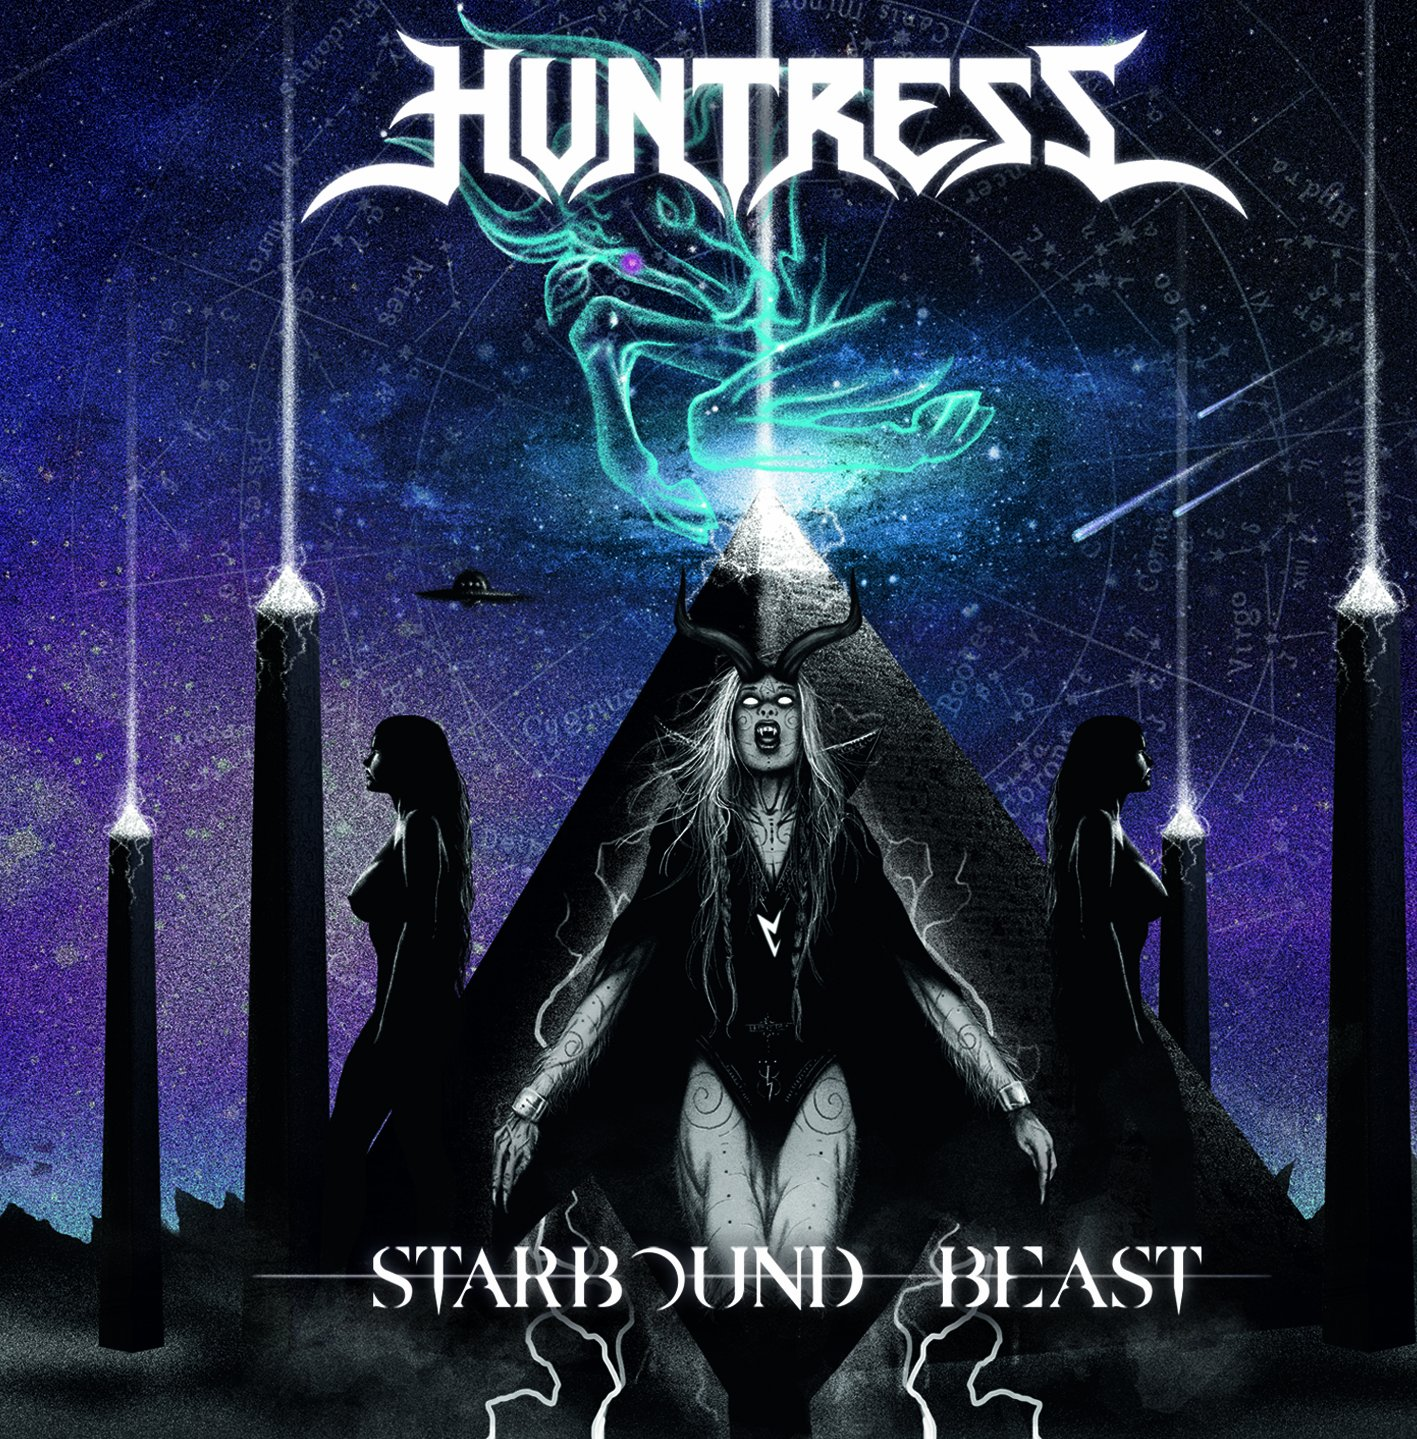 Huntress-Starbound Beast